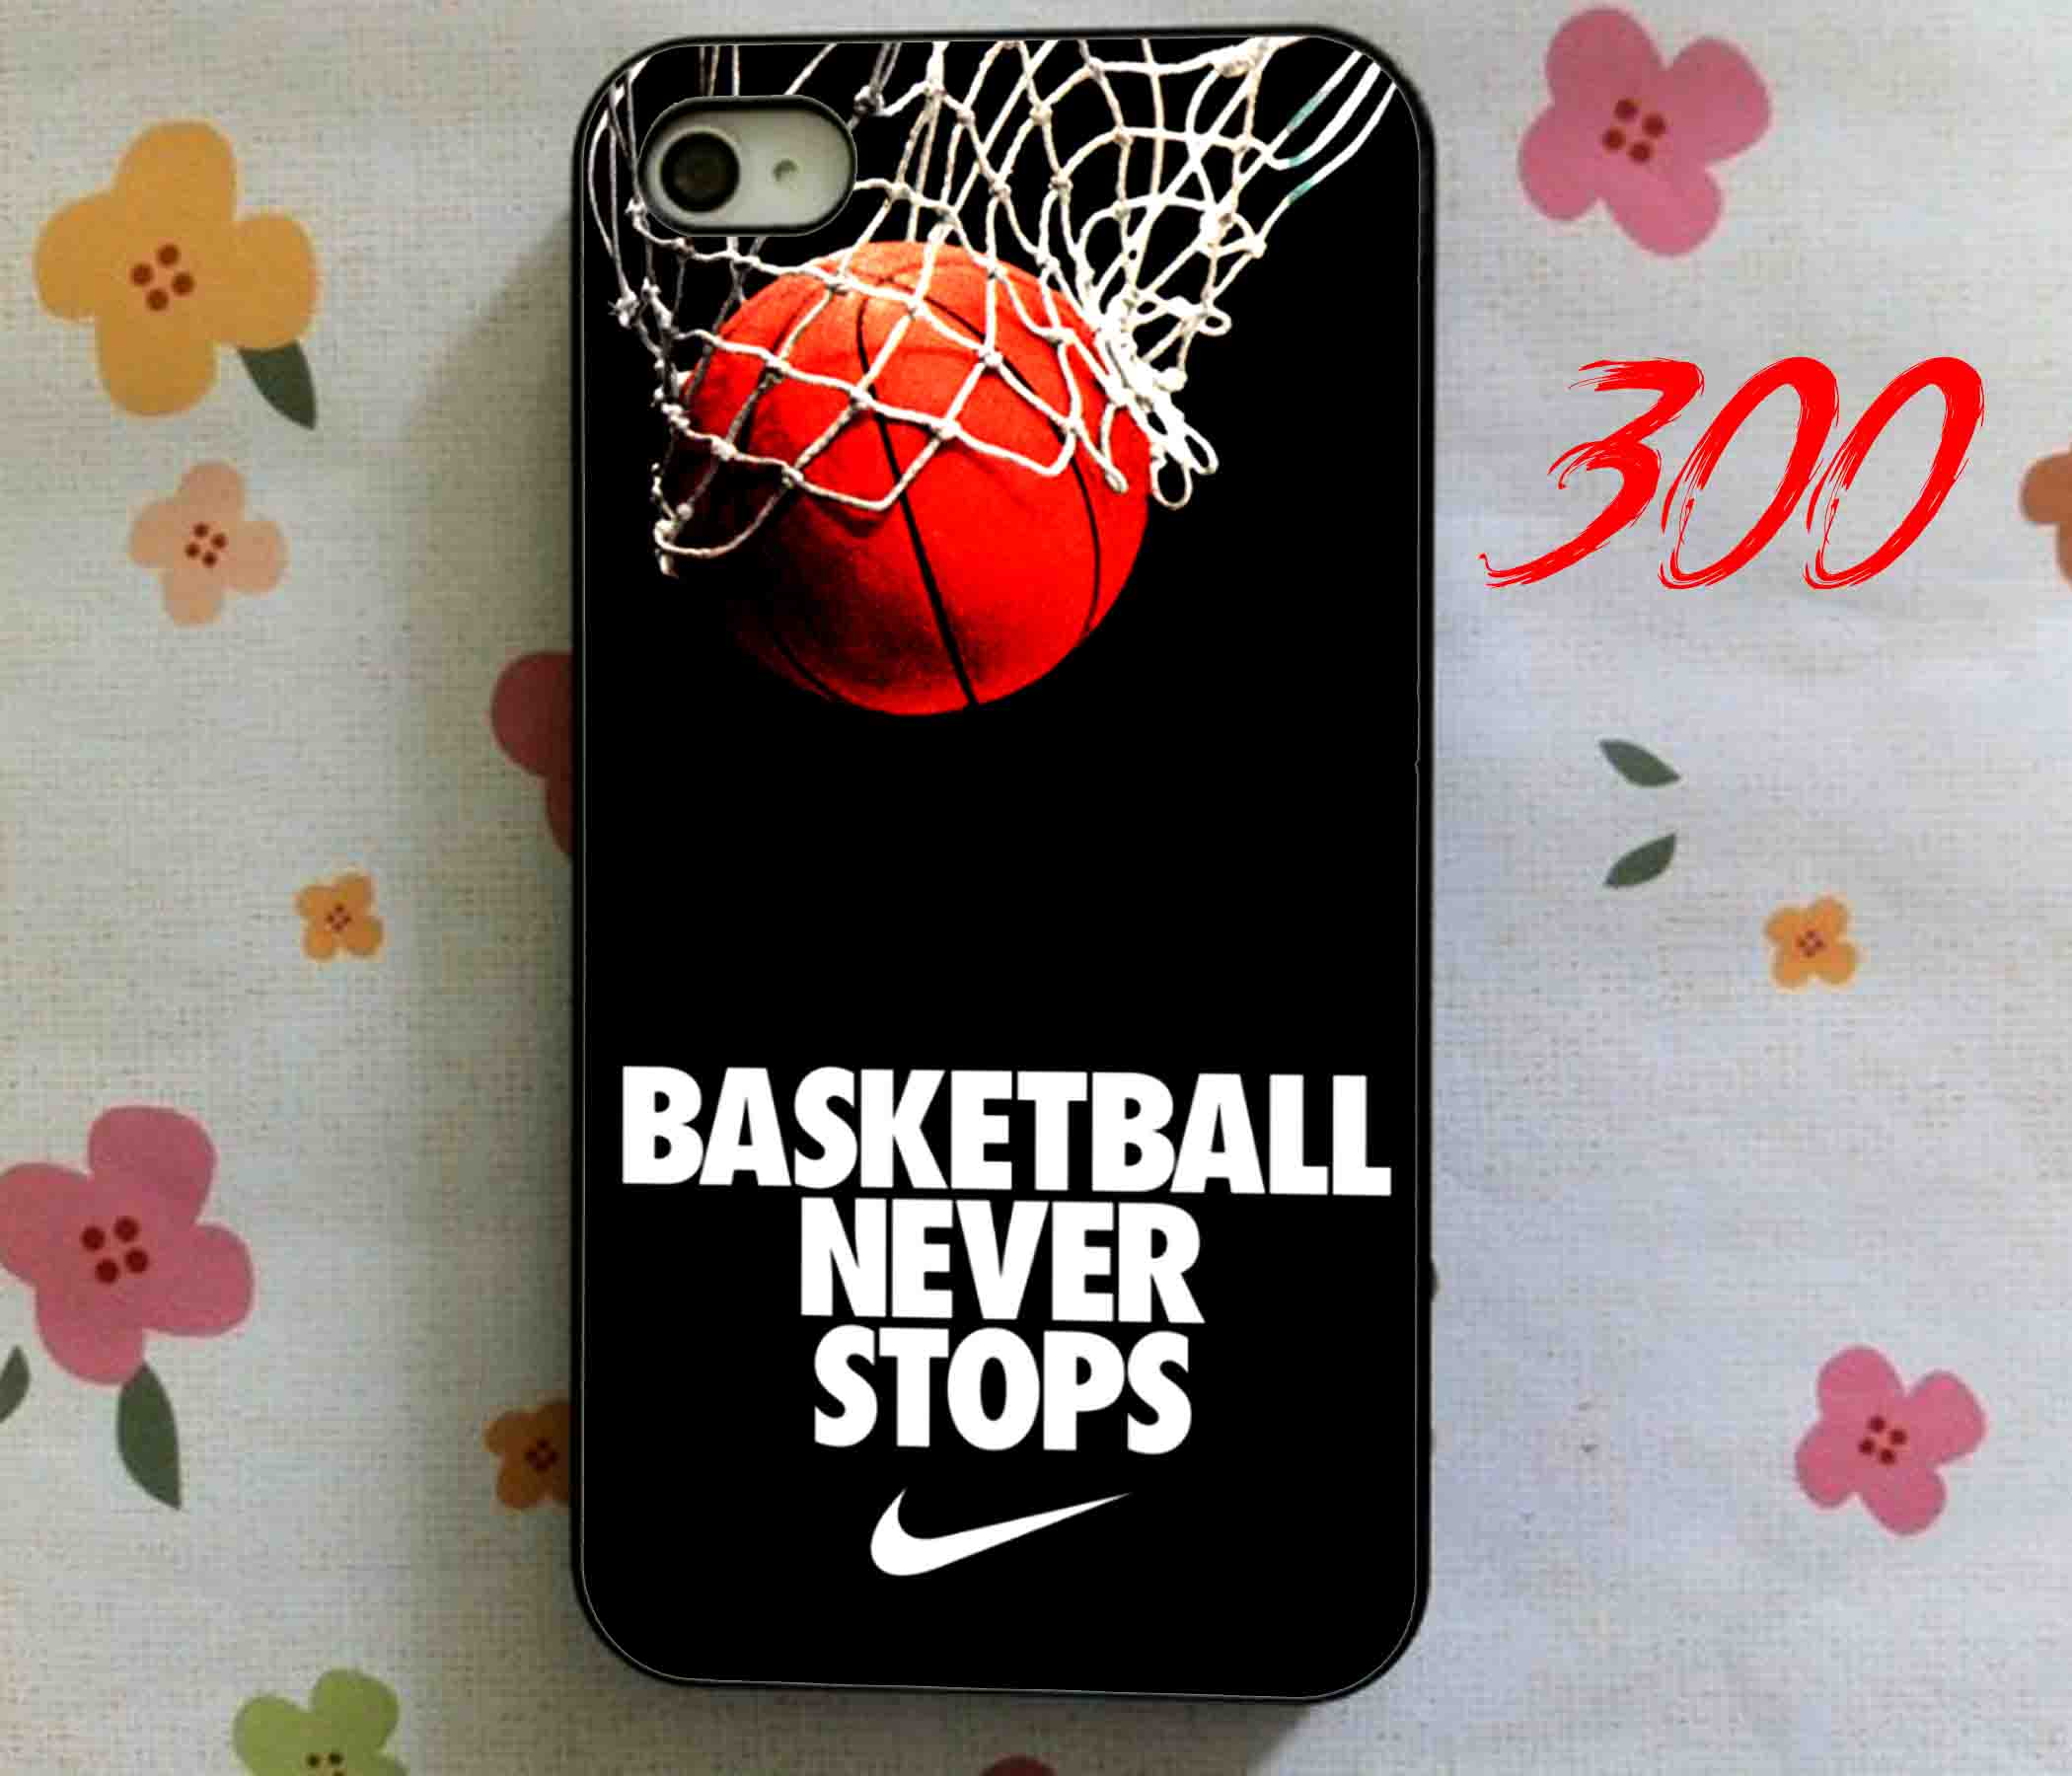 huge discount 90087 28a61 Basketball Never Stop, iPhone Case, Samsung Galaxy Case, iPad Case from  ThreeHundred